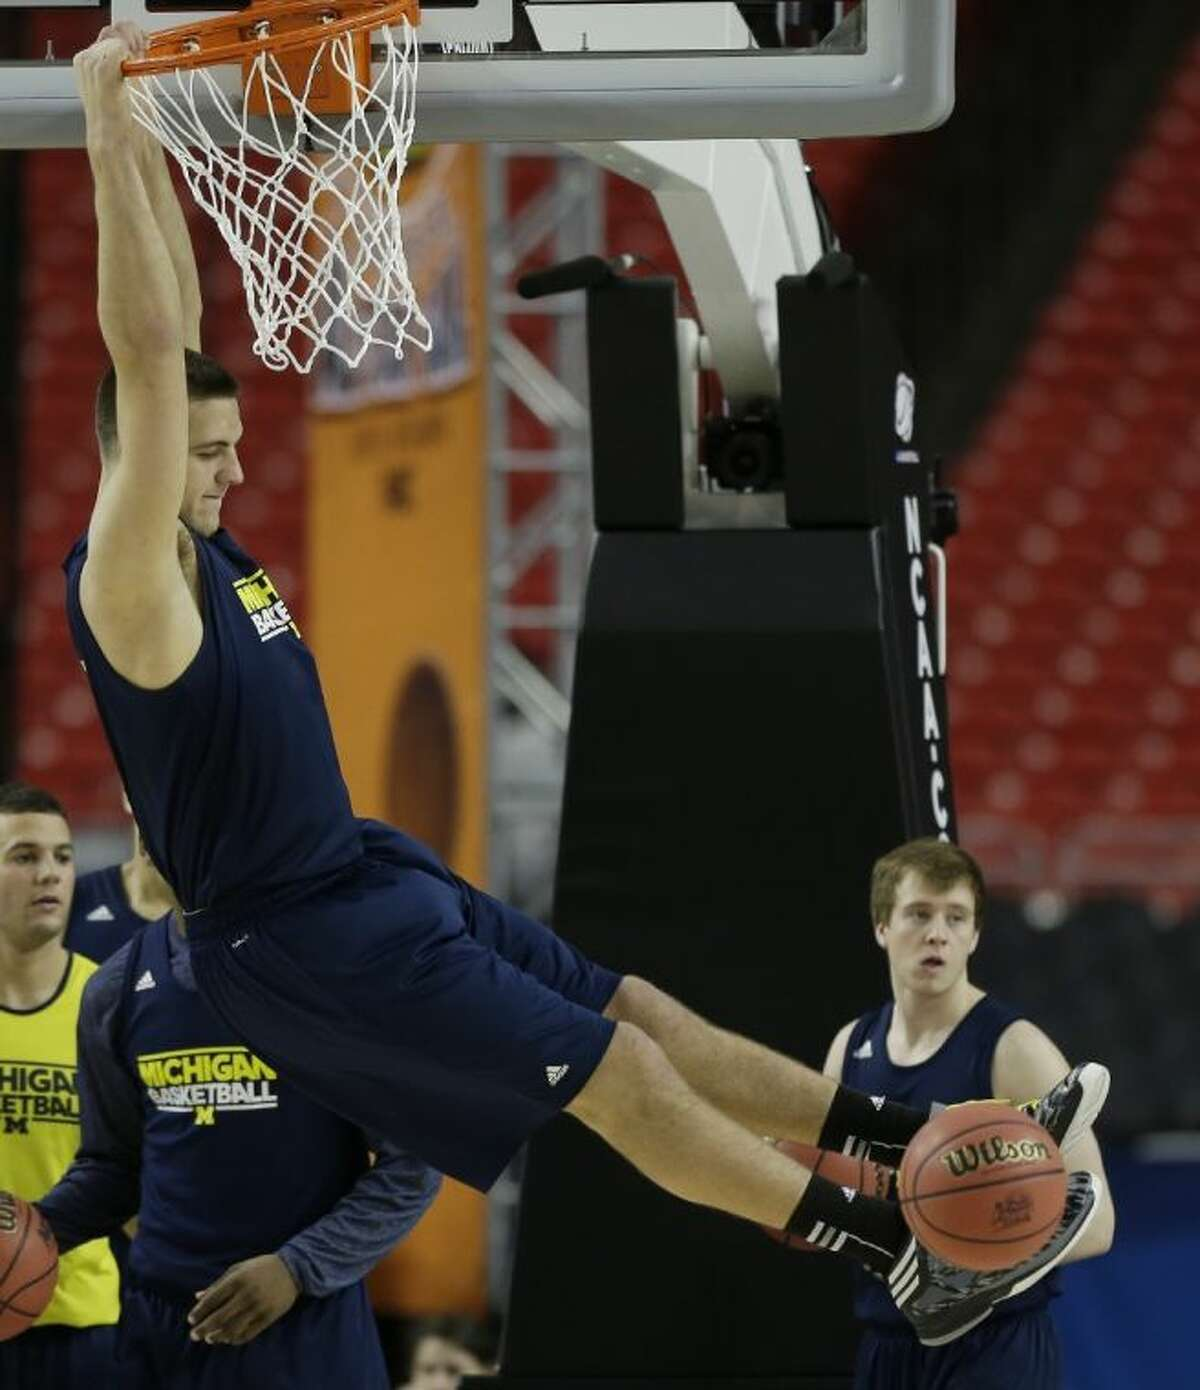 Michigan's Mitch McGary hangs from the rim during the Wolverines' Final Four practice. Michigan faces Syracuse tonight.